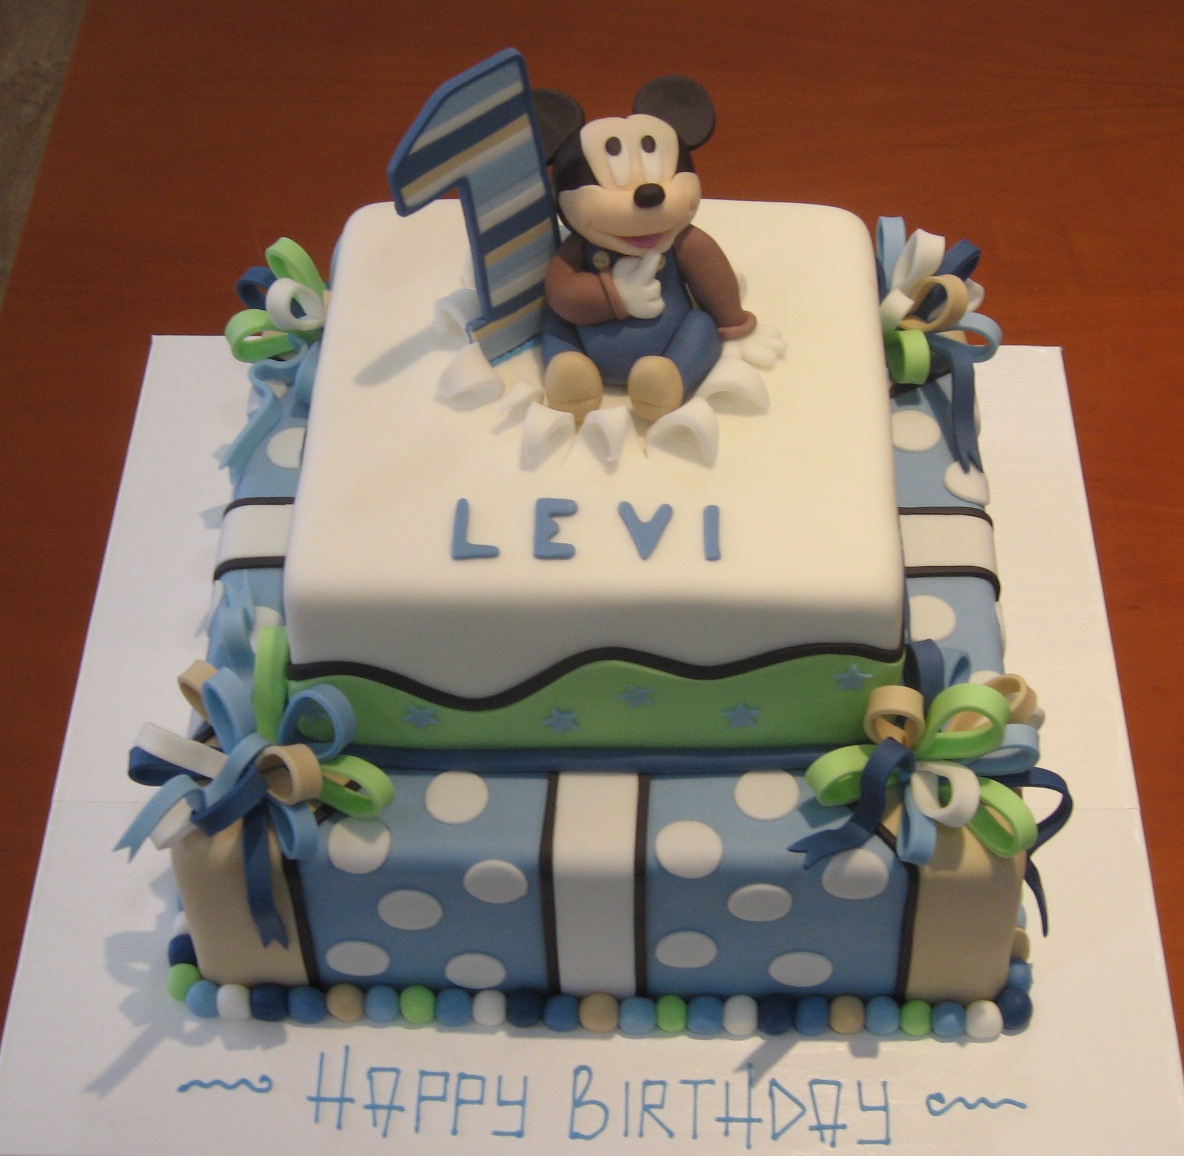 Let Them Eat Cake: August 2013